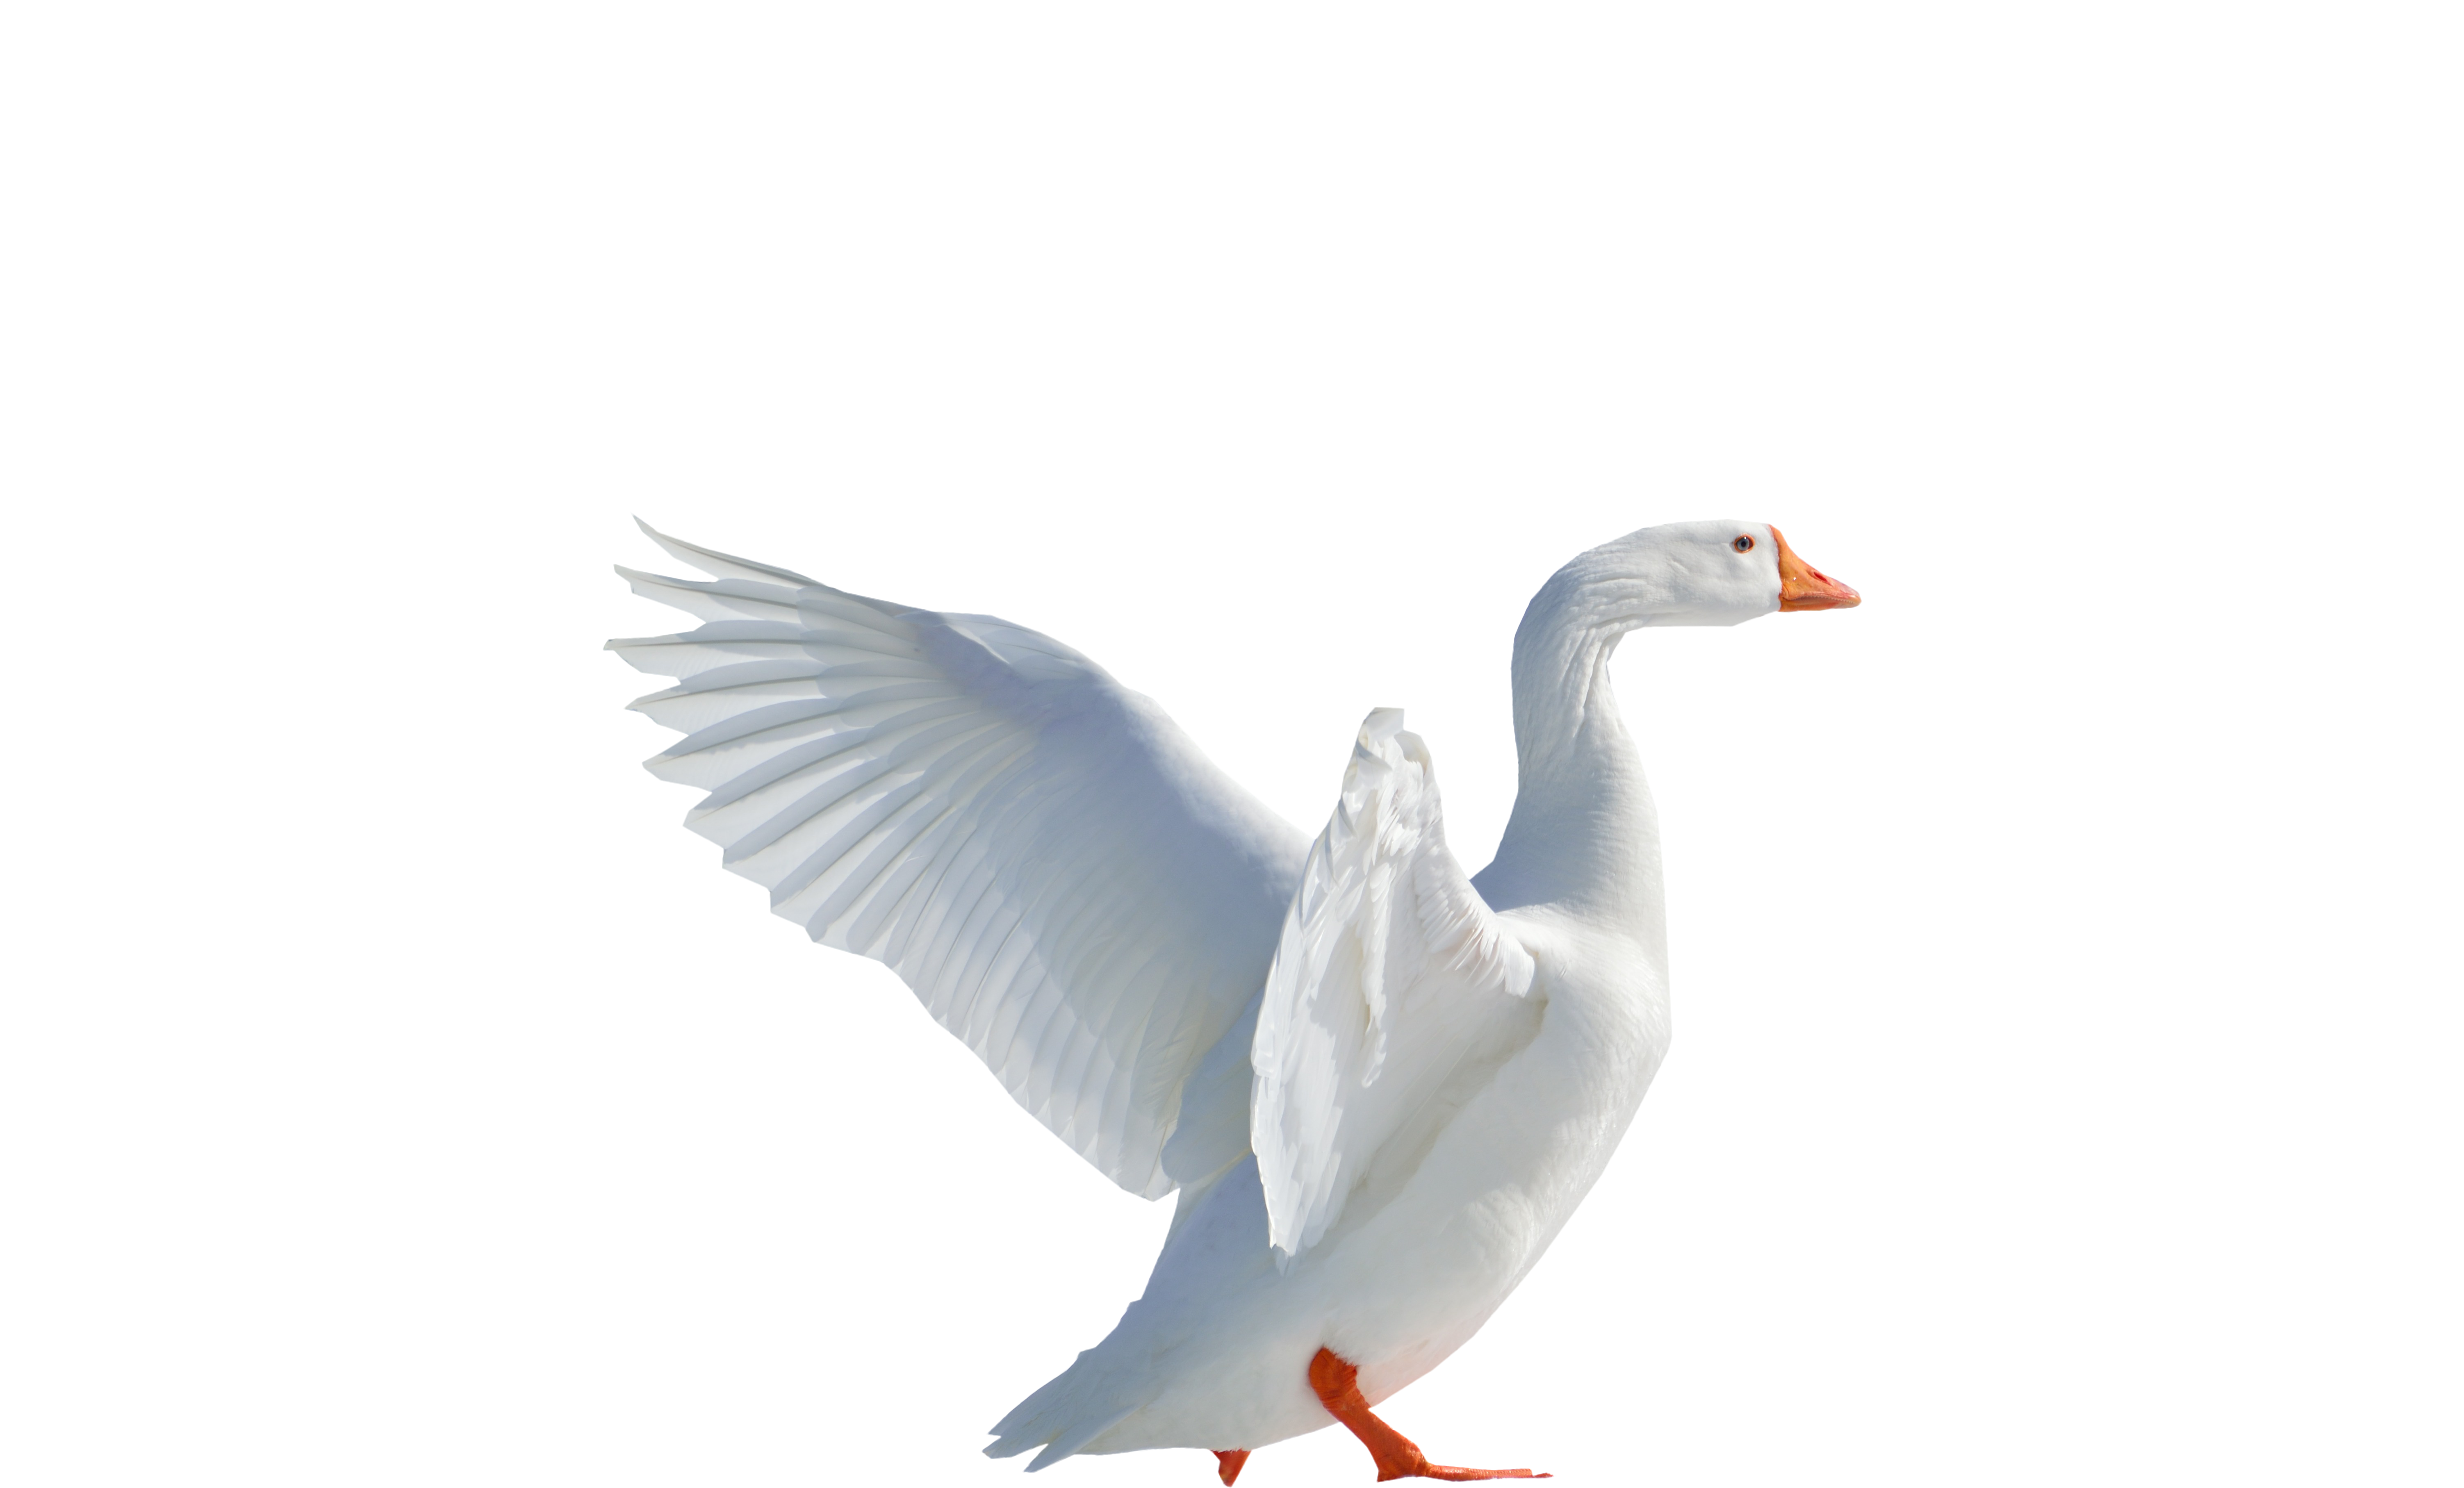 Duckling clipart wing. Goose flying png image